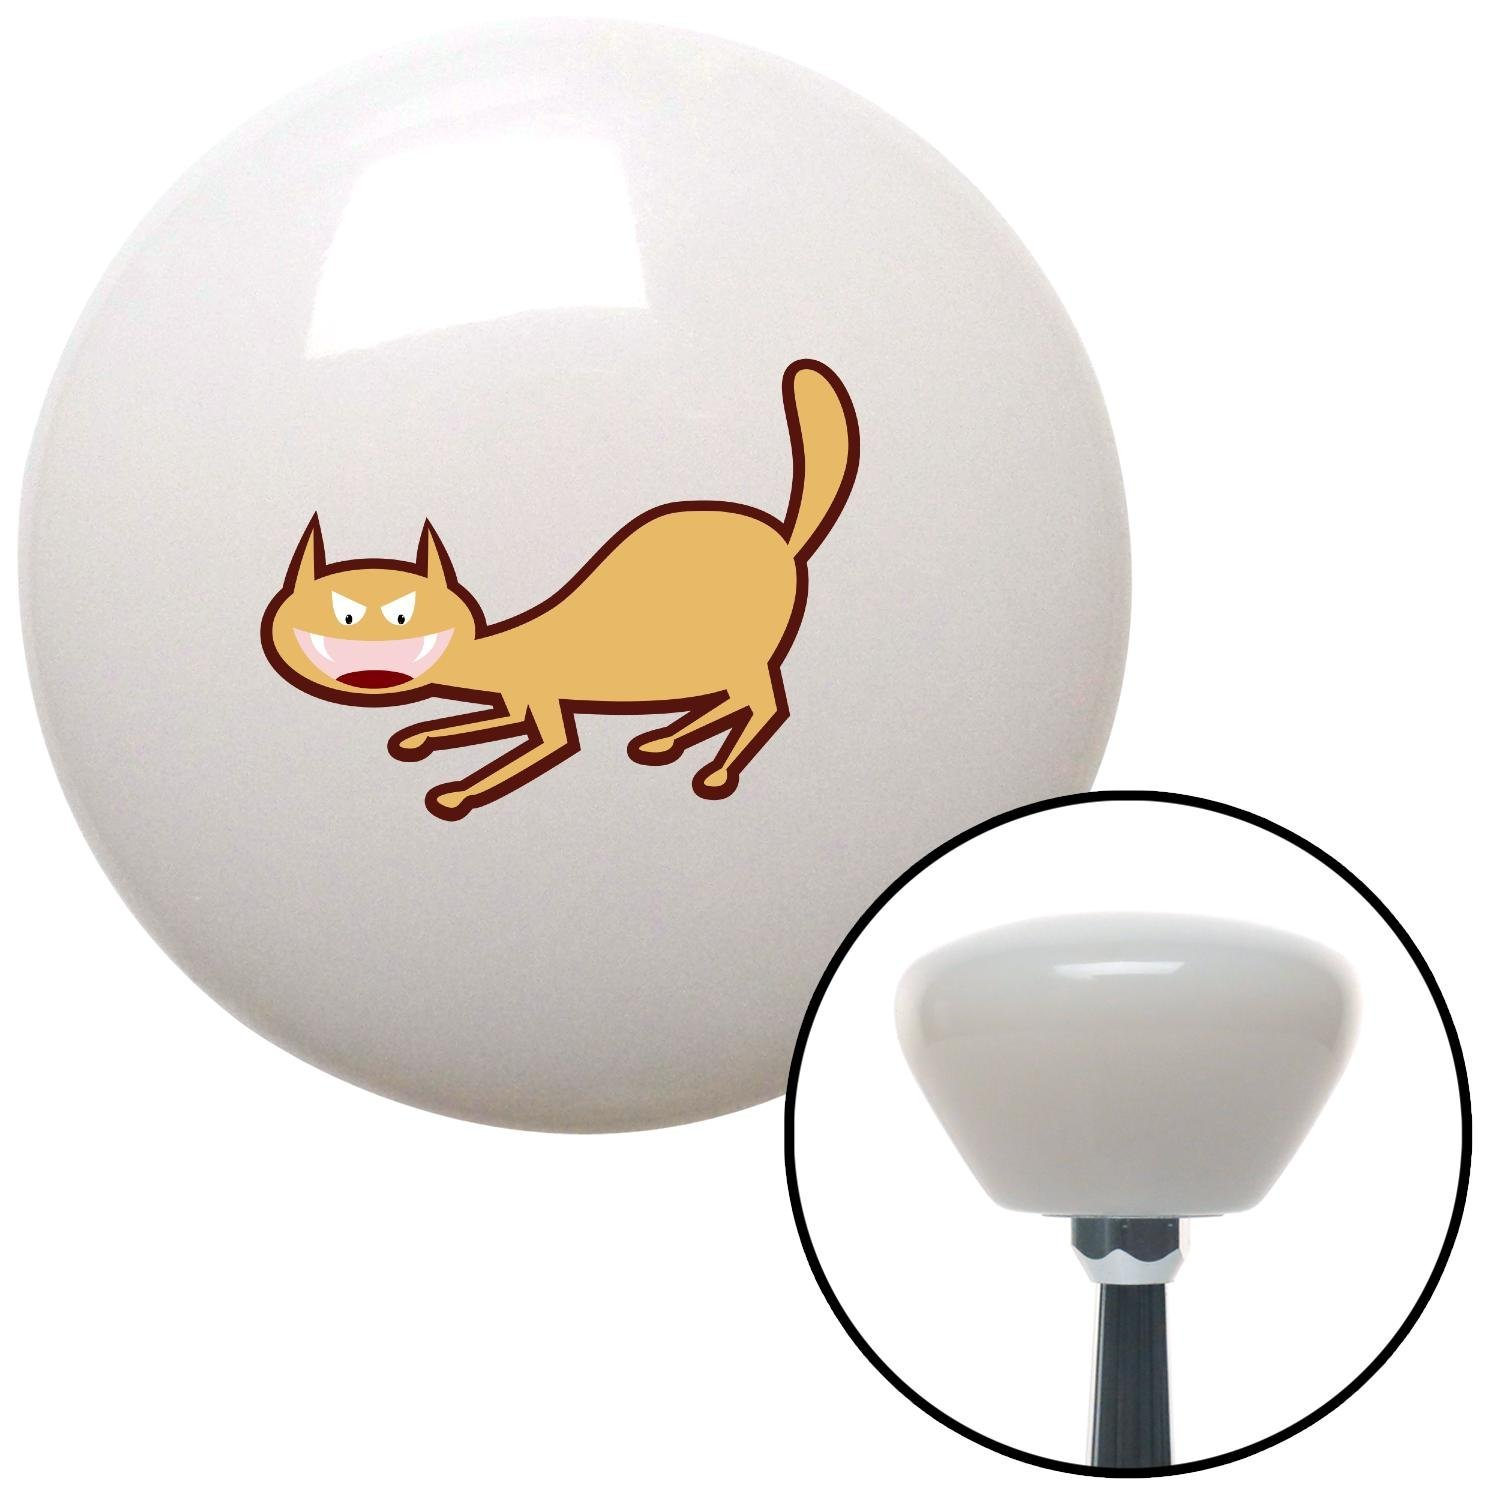 Cat Scary 2 American Shifter 151114 White Retro Shift Knob with M16 x 1.5 Insert